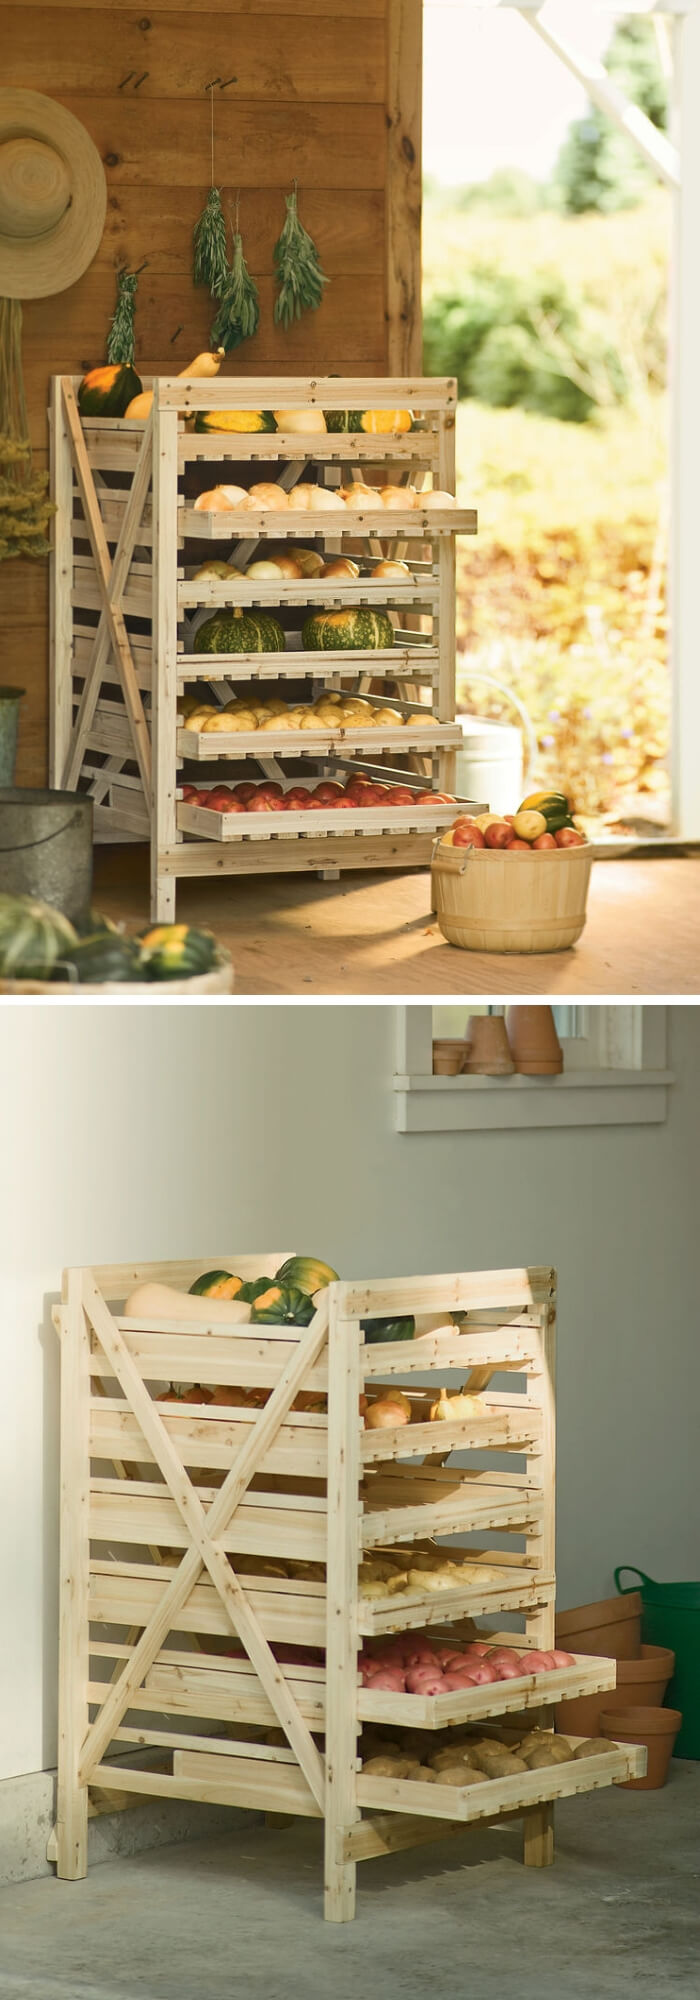 Vegetable Storage Rack | Best Fruit and Vegetable Storage Ideas For Your Kitchen